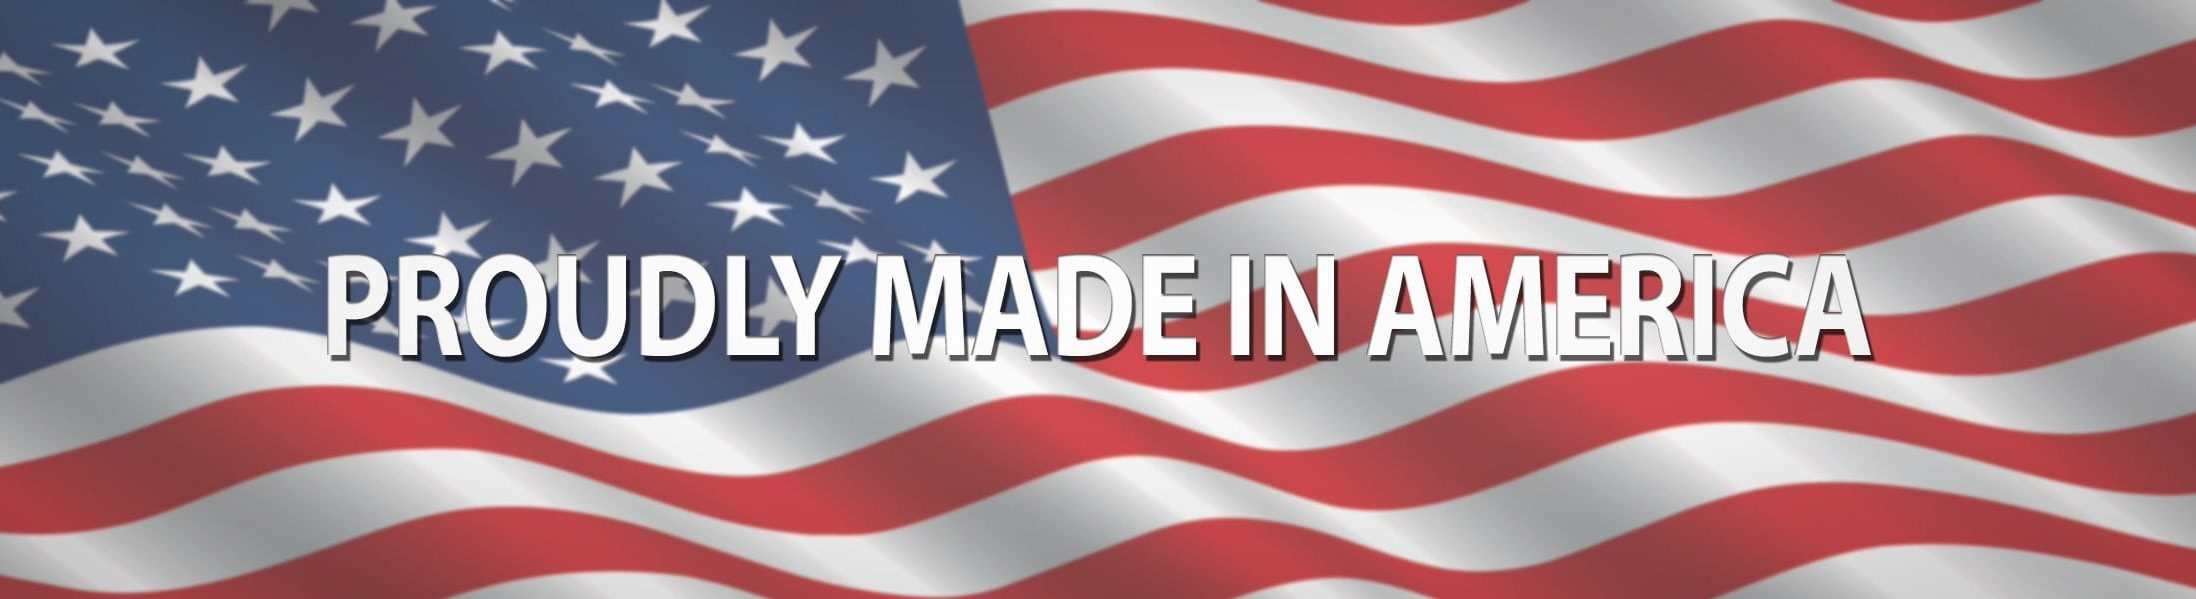 Products Proudly Made in America